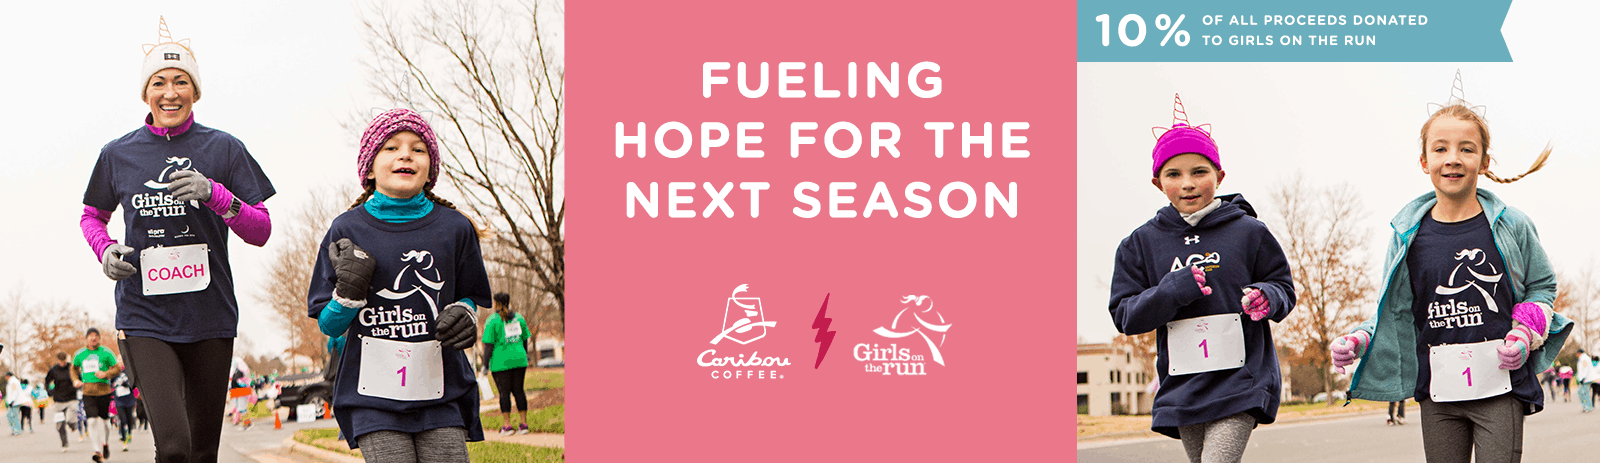 Amy's Blend - Fueling Hope for the next season